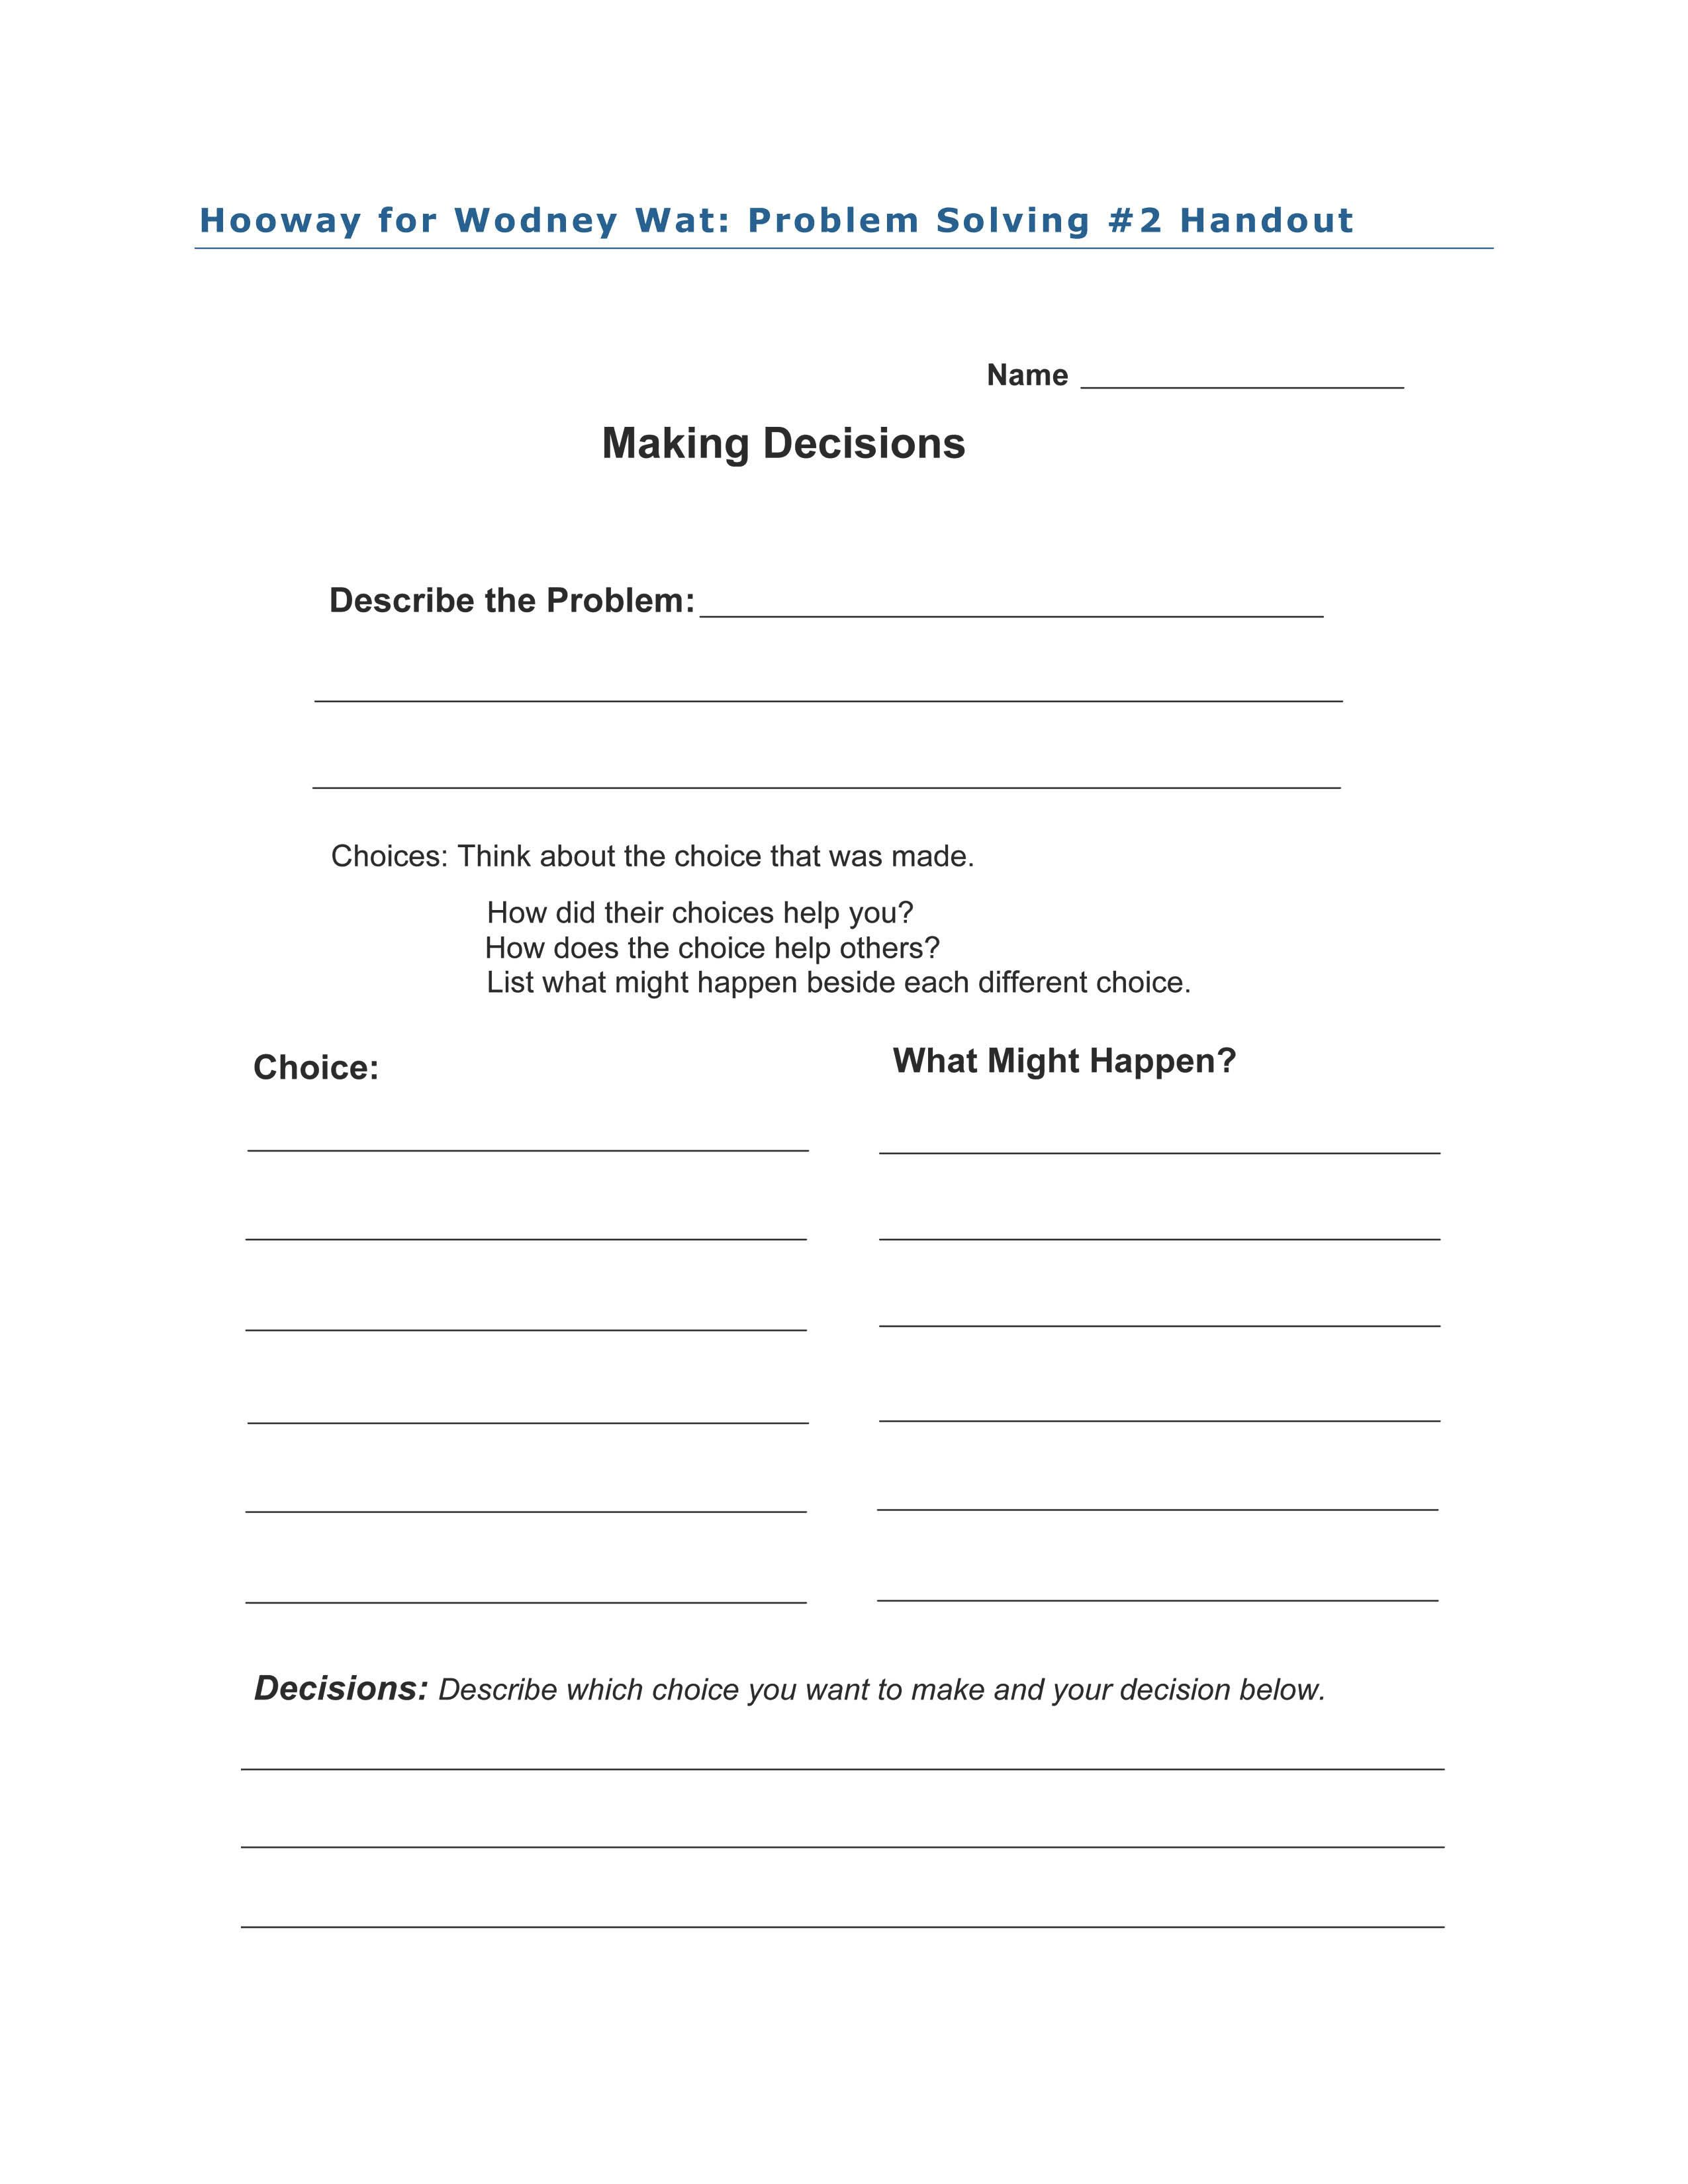 Problem Solving 2 activity for Hooway for Wodney Wat by Helen Lester ...